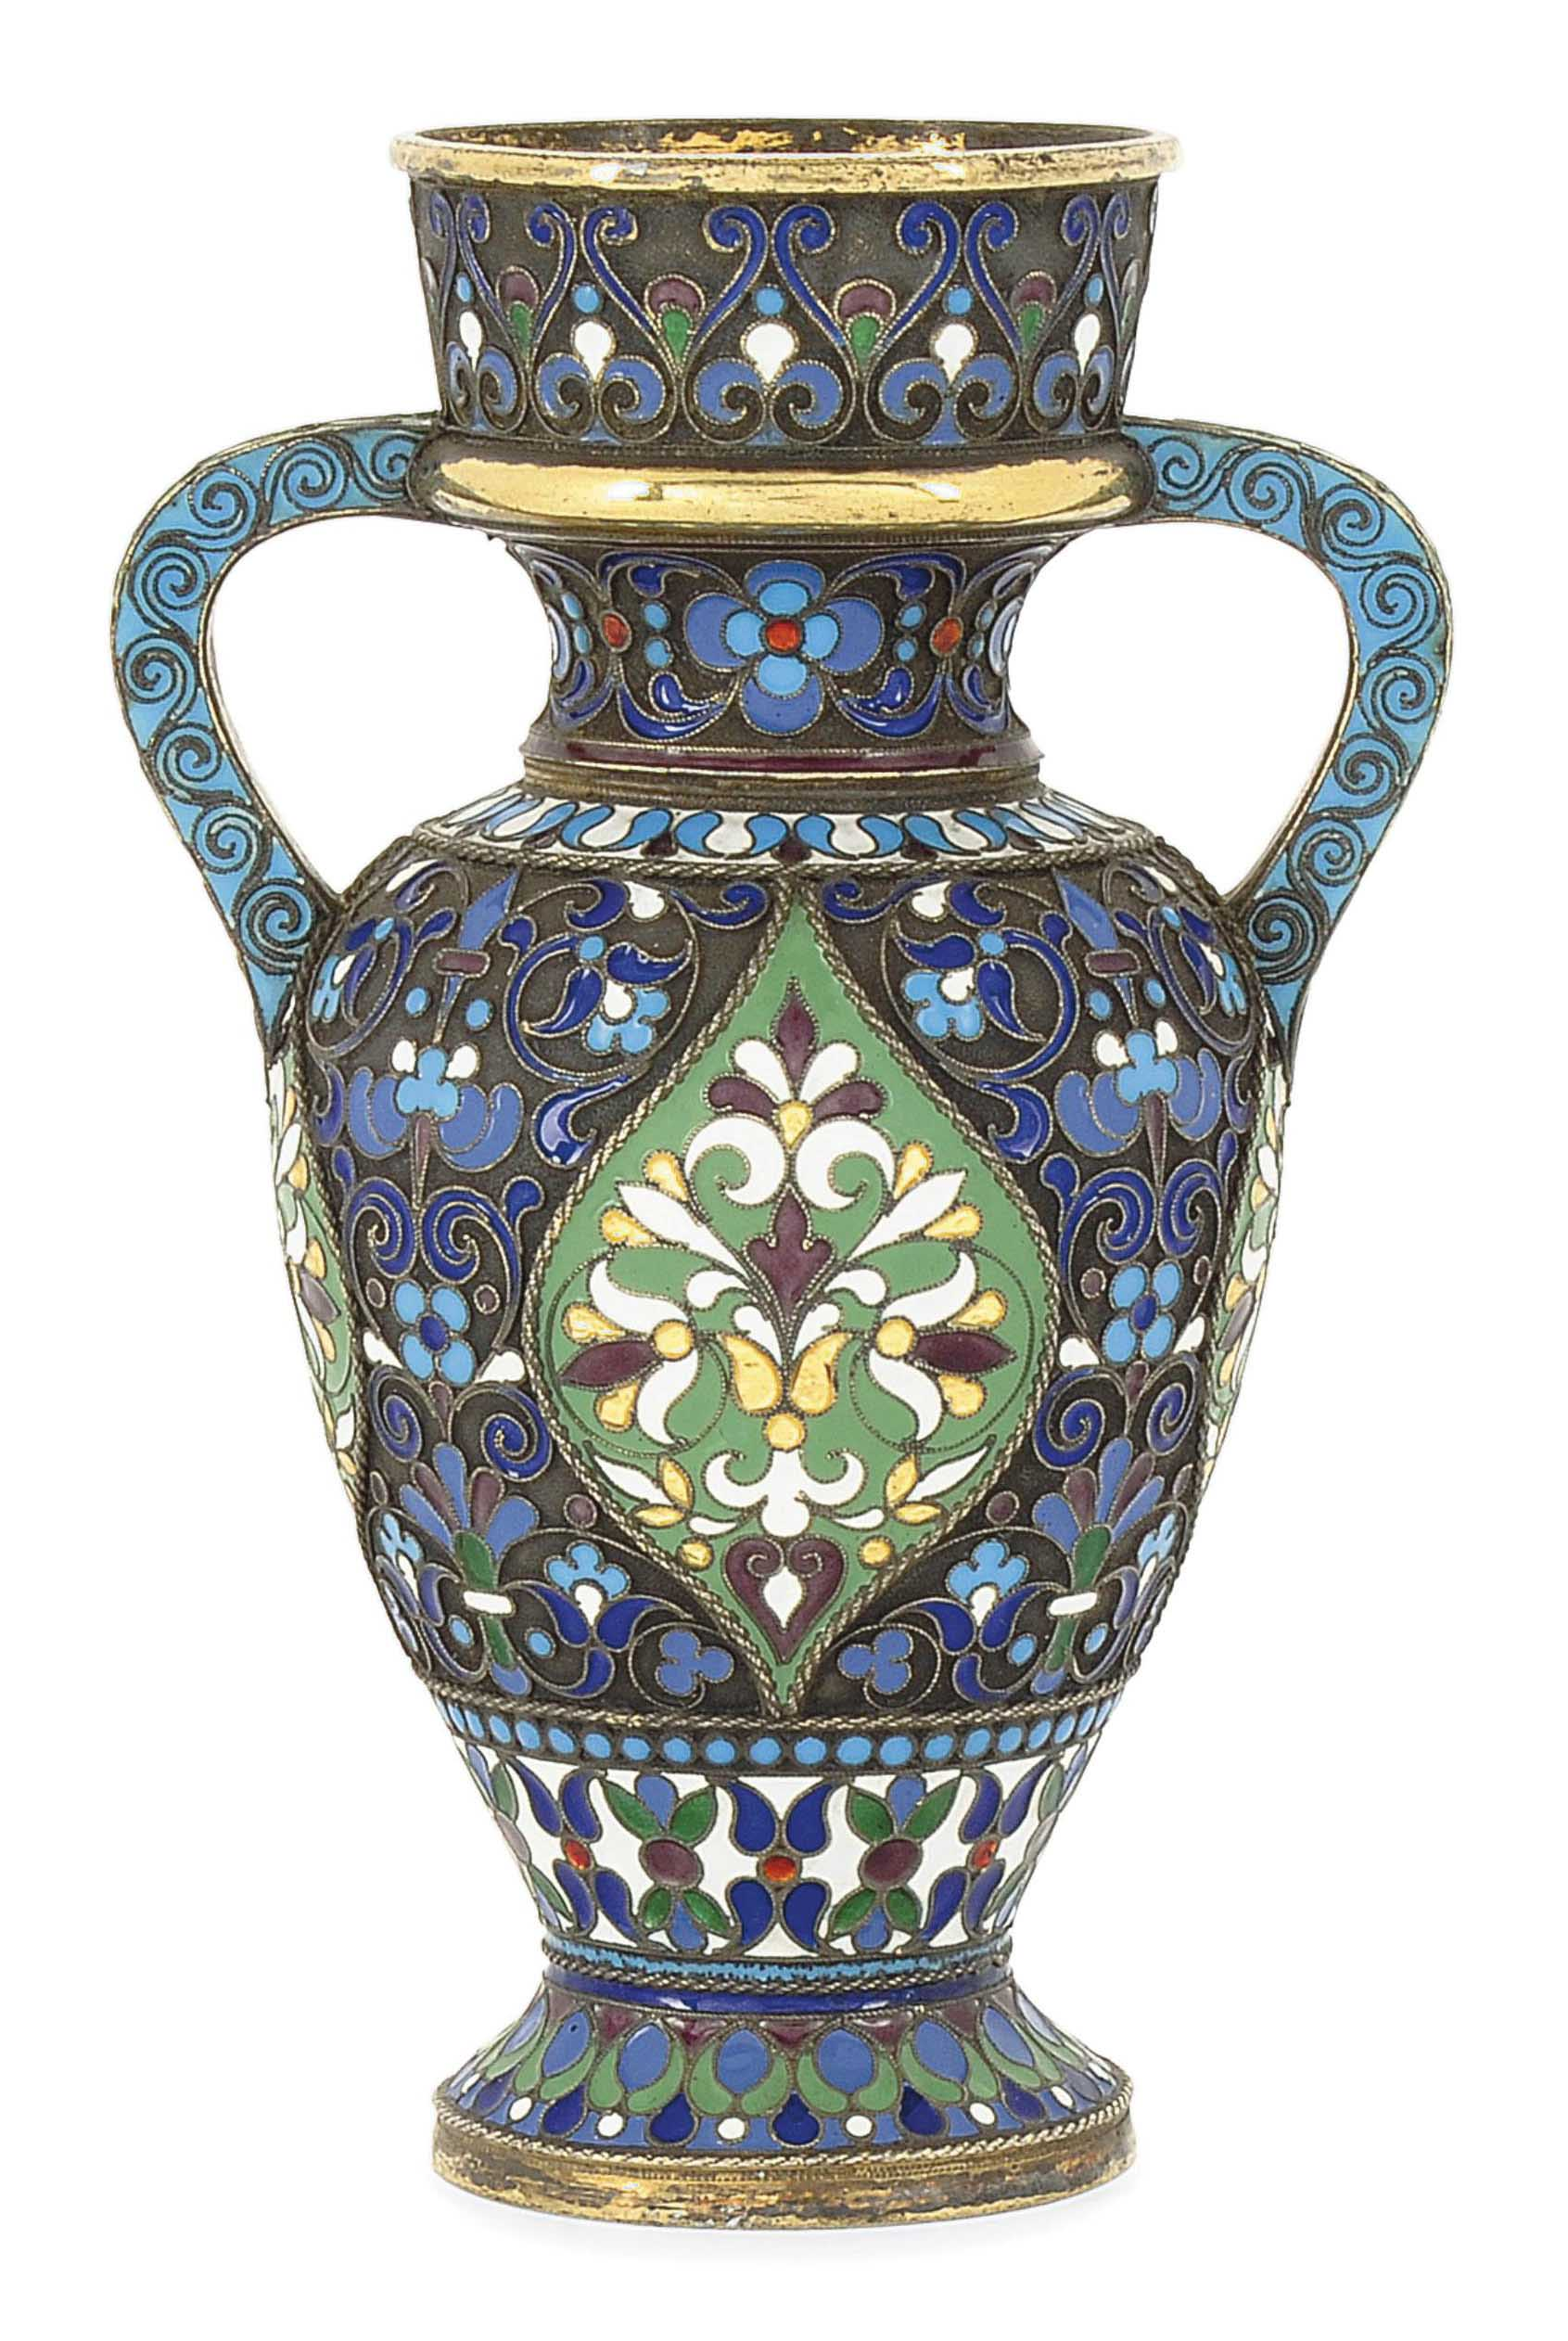 A RUSSIAN SILVER-GILT AND CLOISONNE ENAMEL VASE